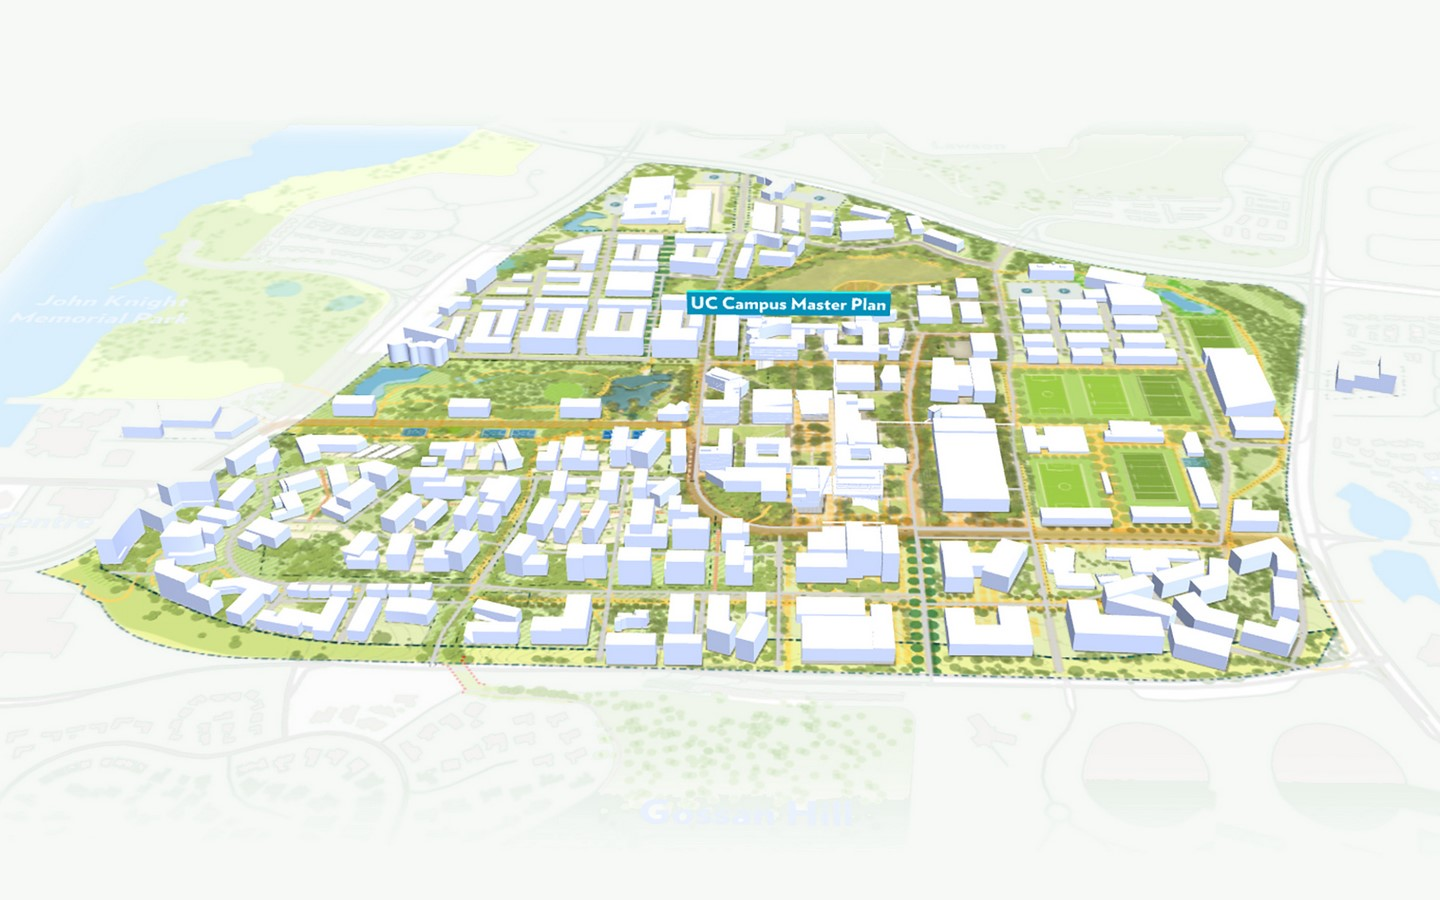 Campus Masterplan costing $5 Billion designed for the Transformation of University of Canberra by MGS and Turf Design - Sheet1